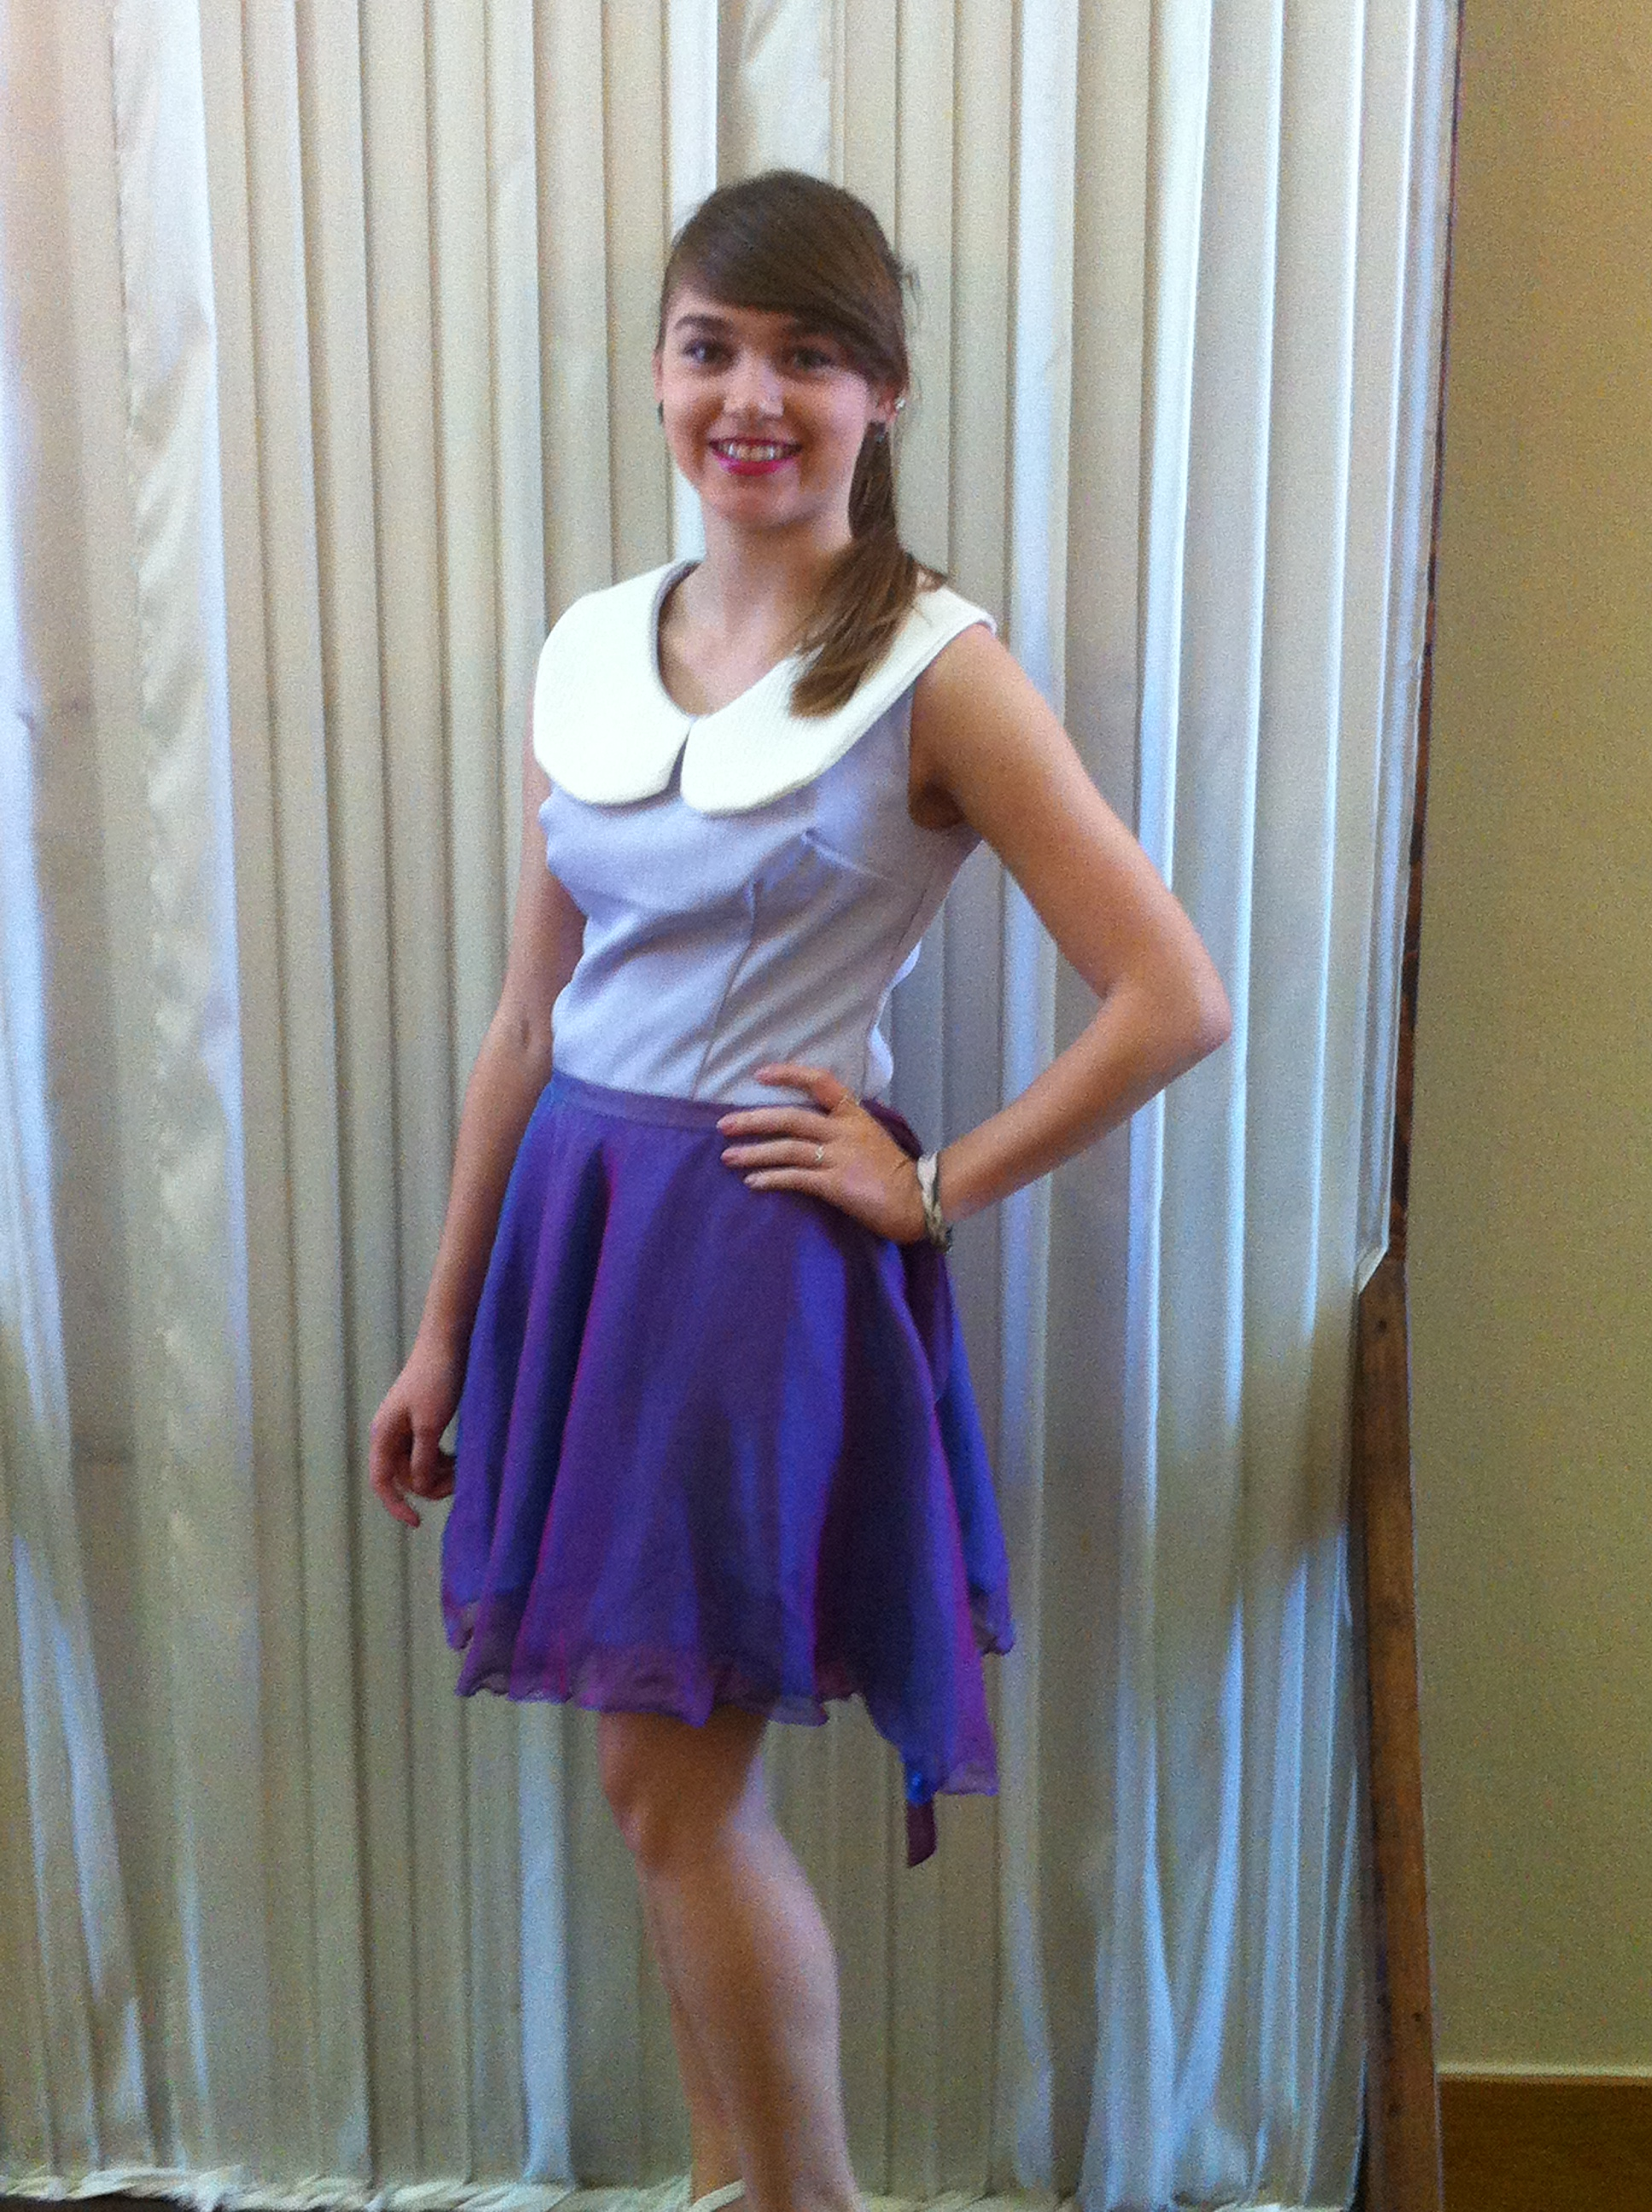 Aly_in_purple&blue_circle_skirt_with_lilac_top_white_collar